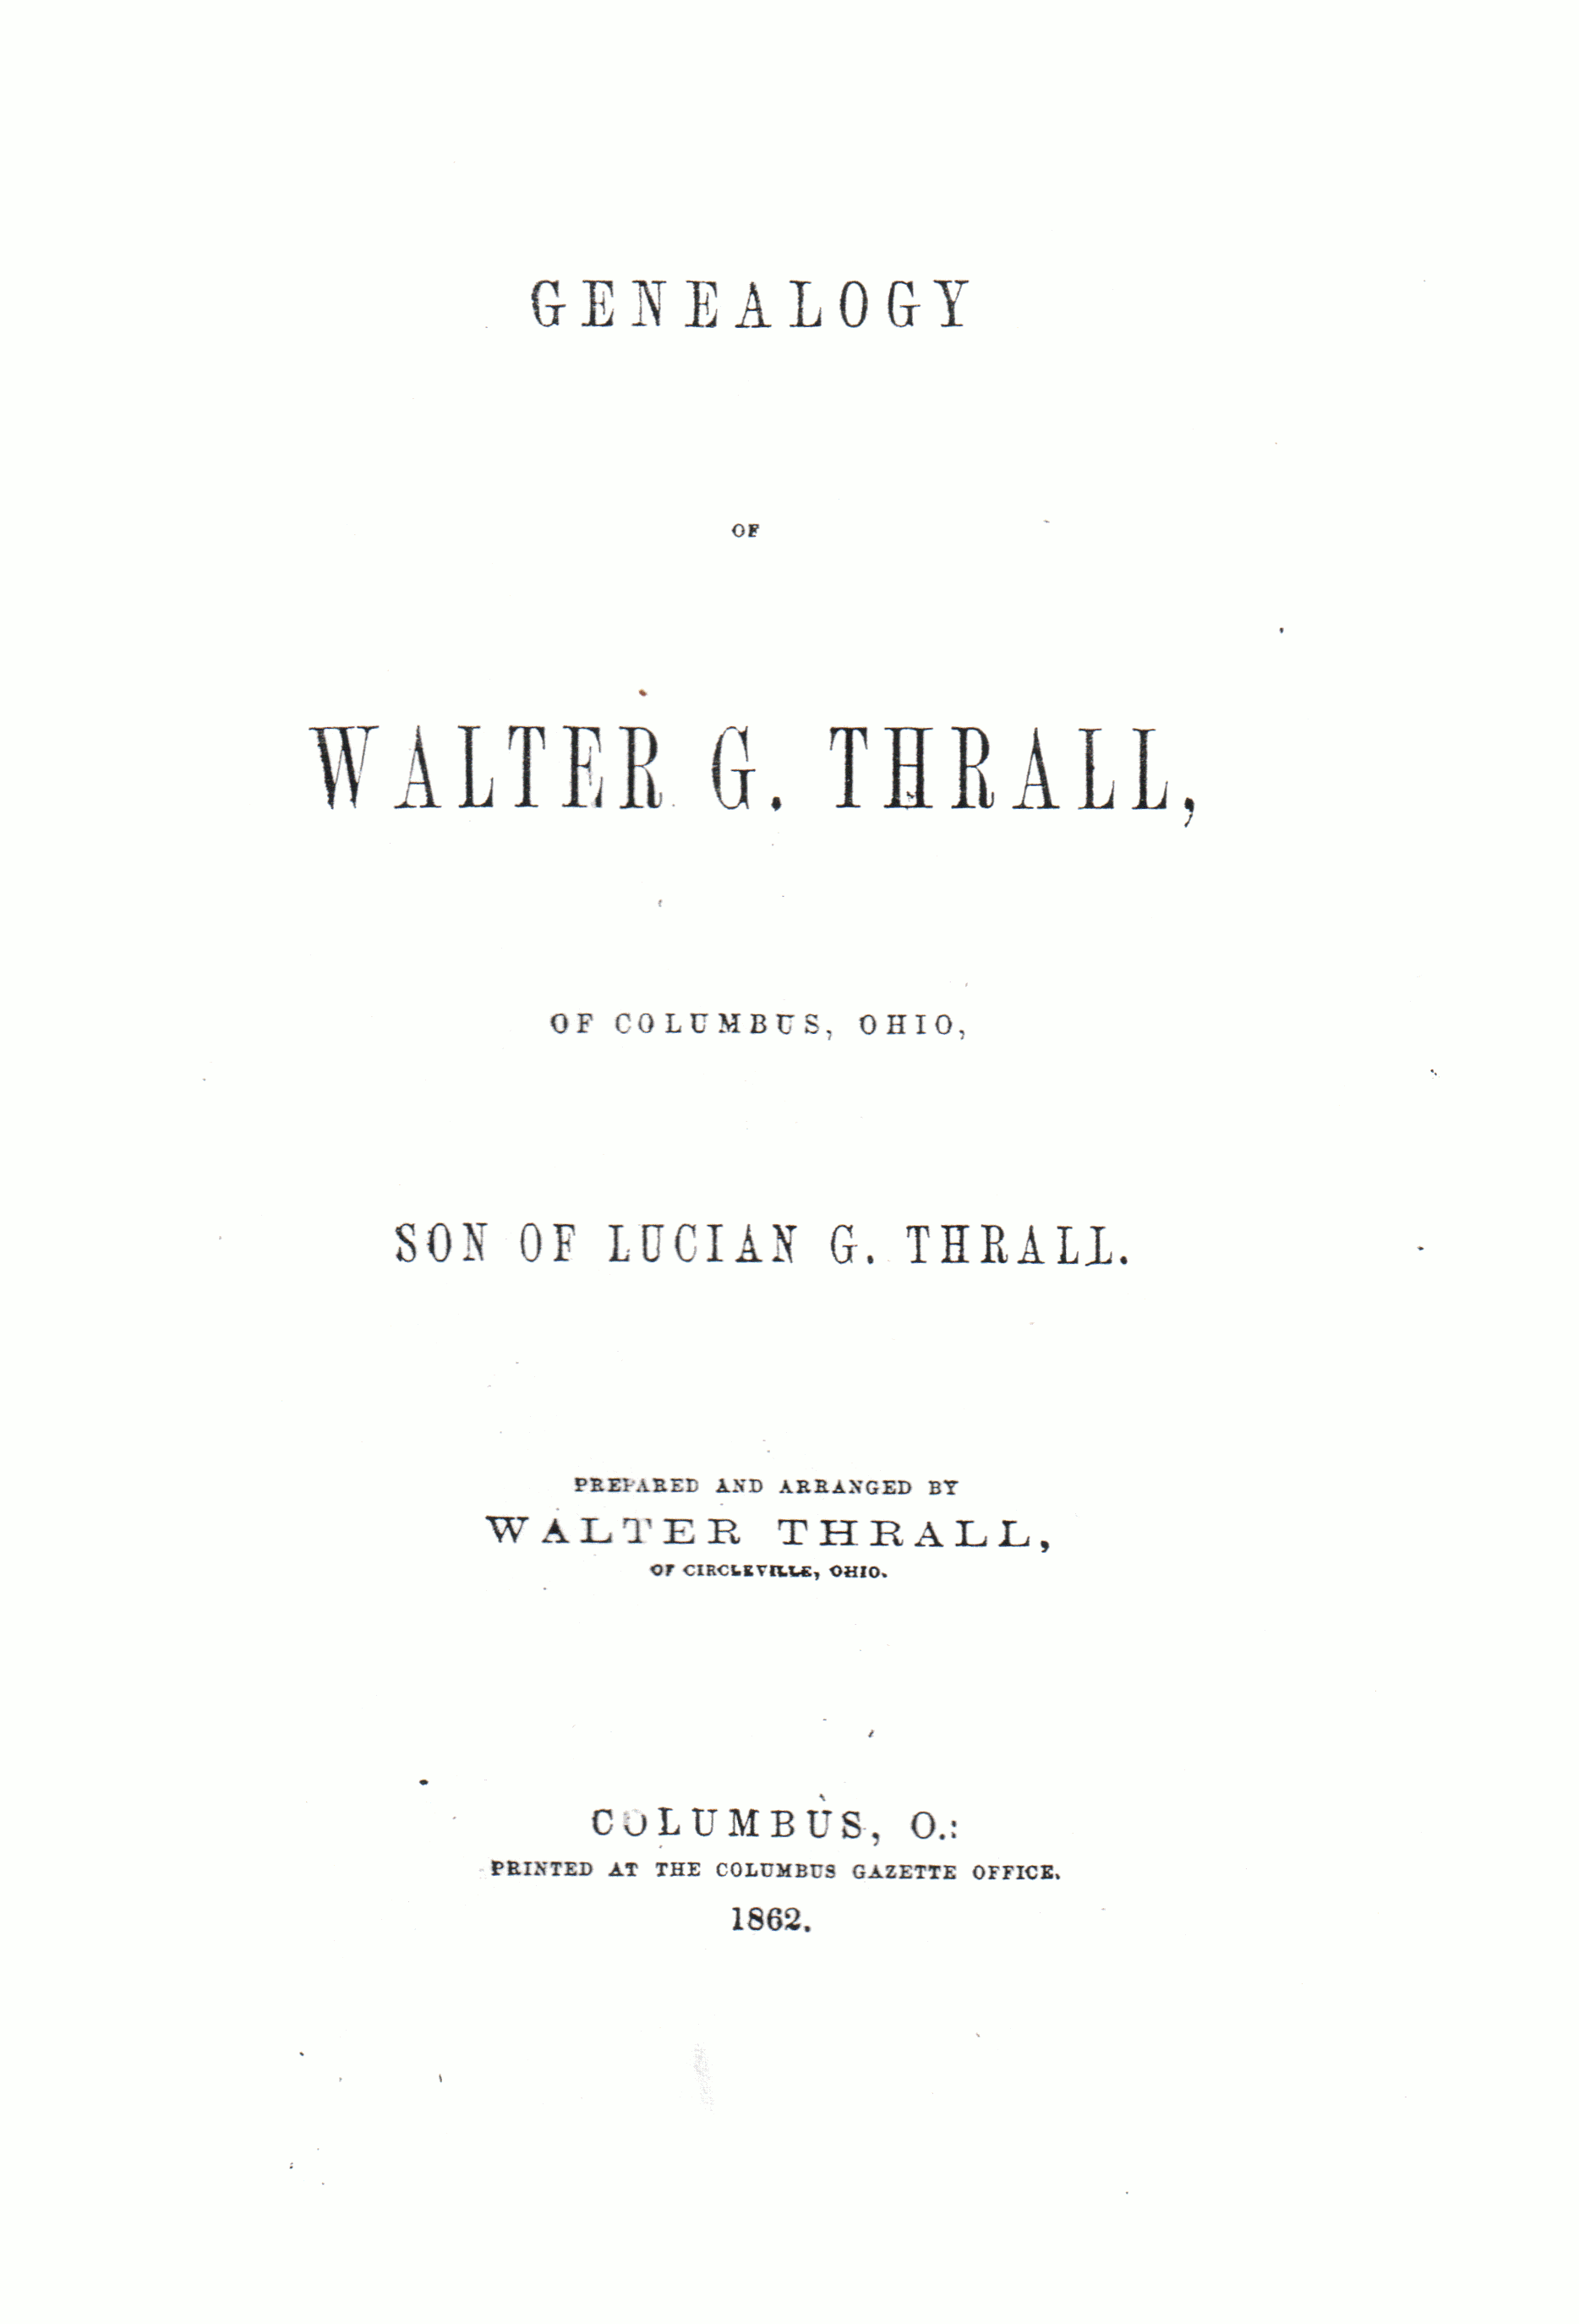 Publication - Genealogy of Walter G Thrall (cover page)